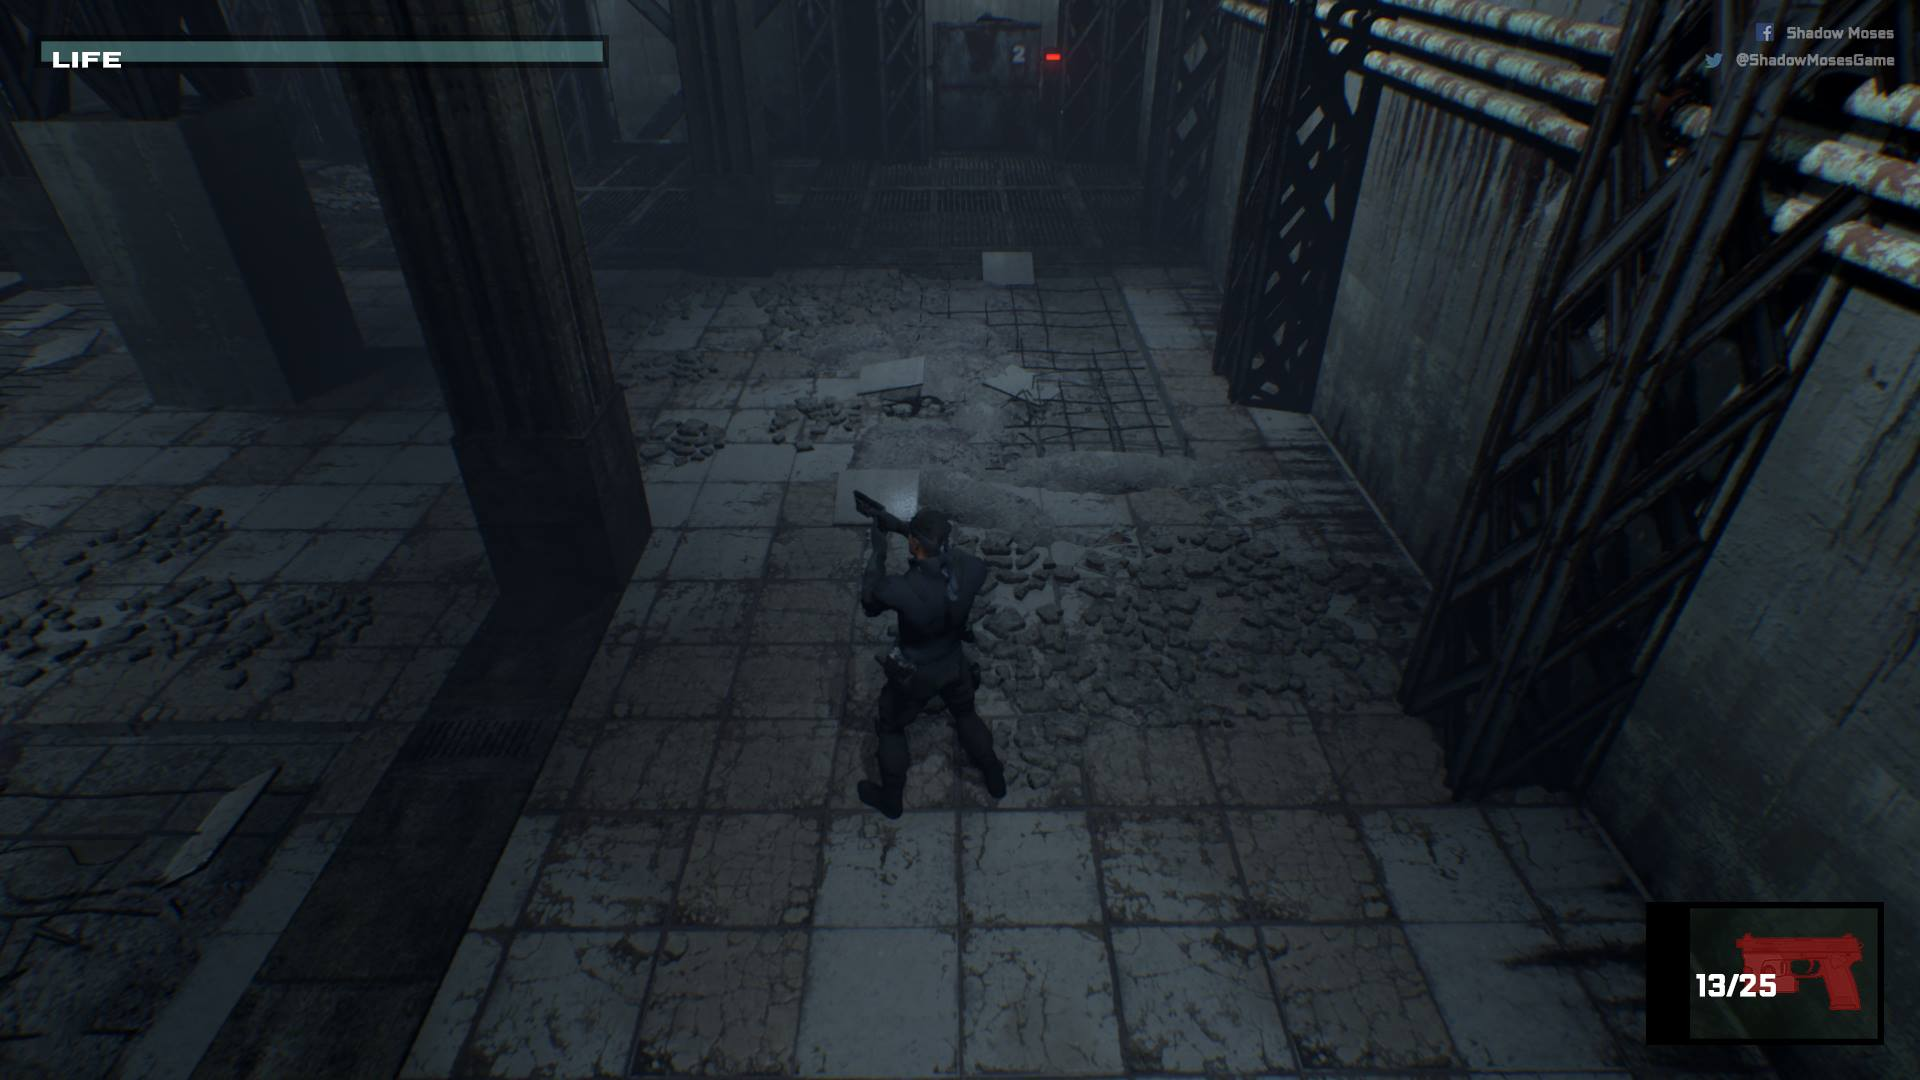 Shadow Moses Metal Gear Solid Unreal Engine Fan Remake Trailer | The